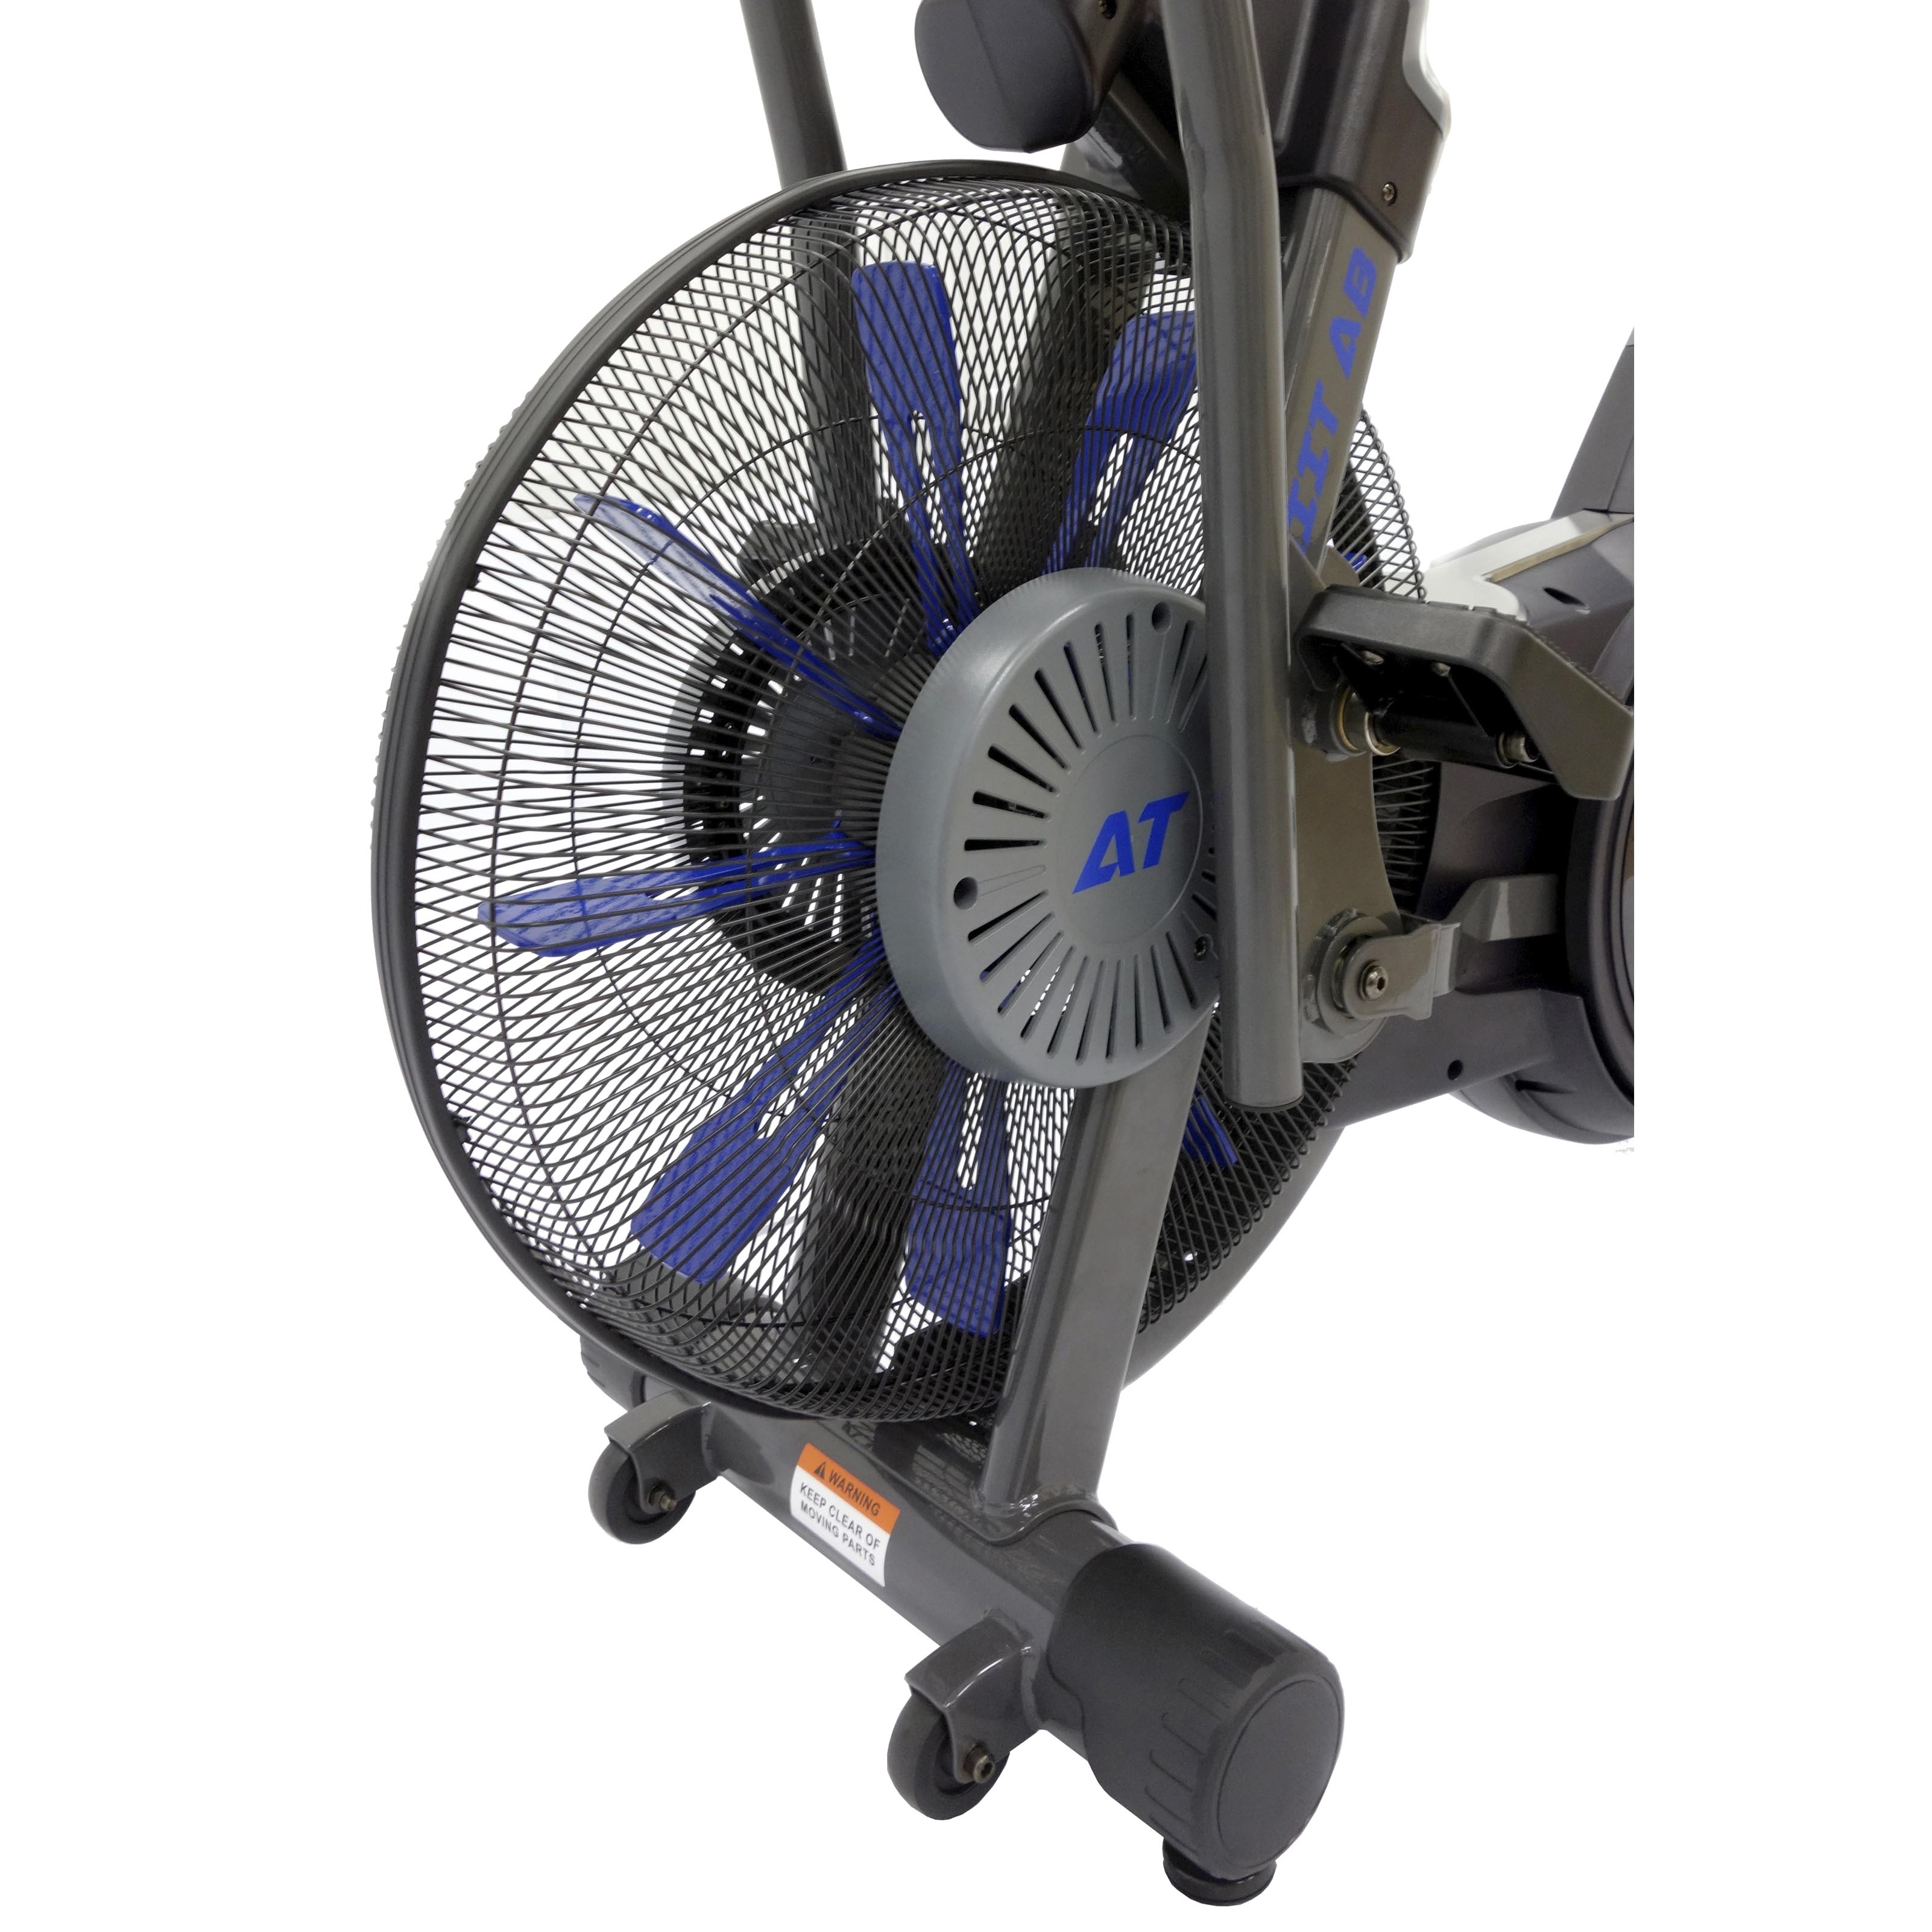 AirTEK Fitness HIIT Air Bike Aero-Fan